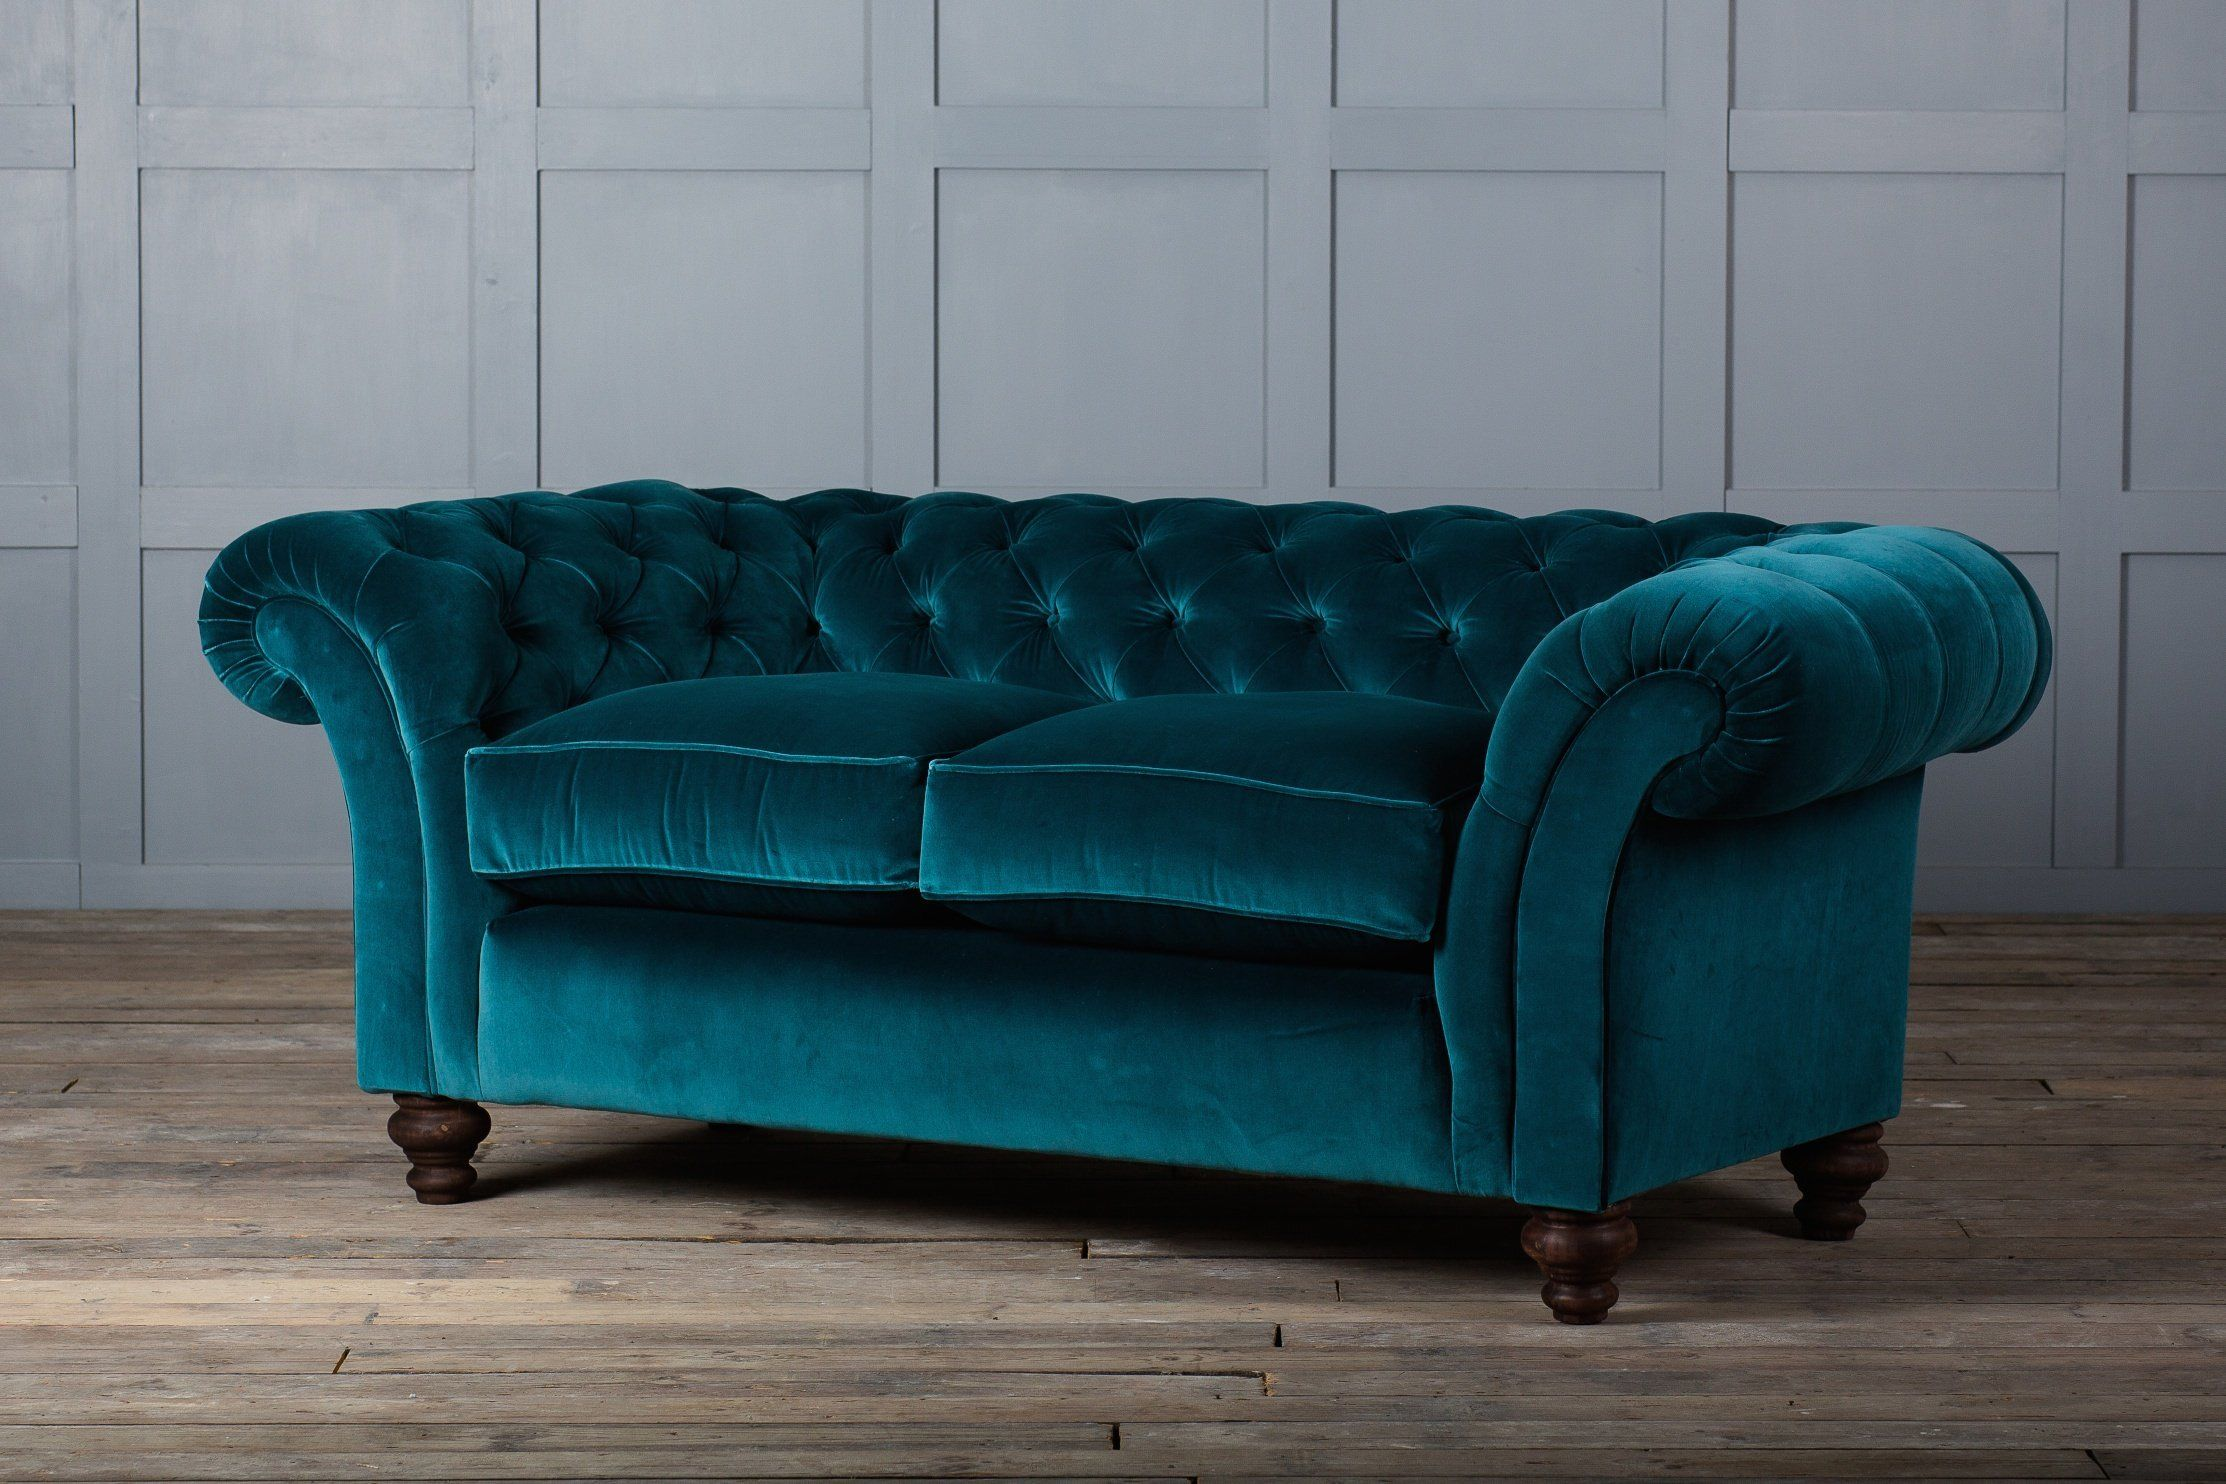 Velvet Sofa home design engrossing blue velvet sofa image for how to clean a